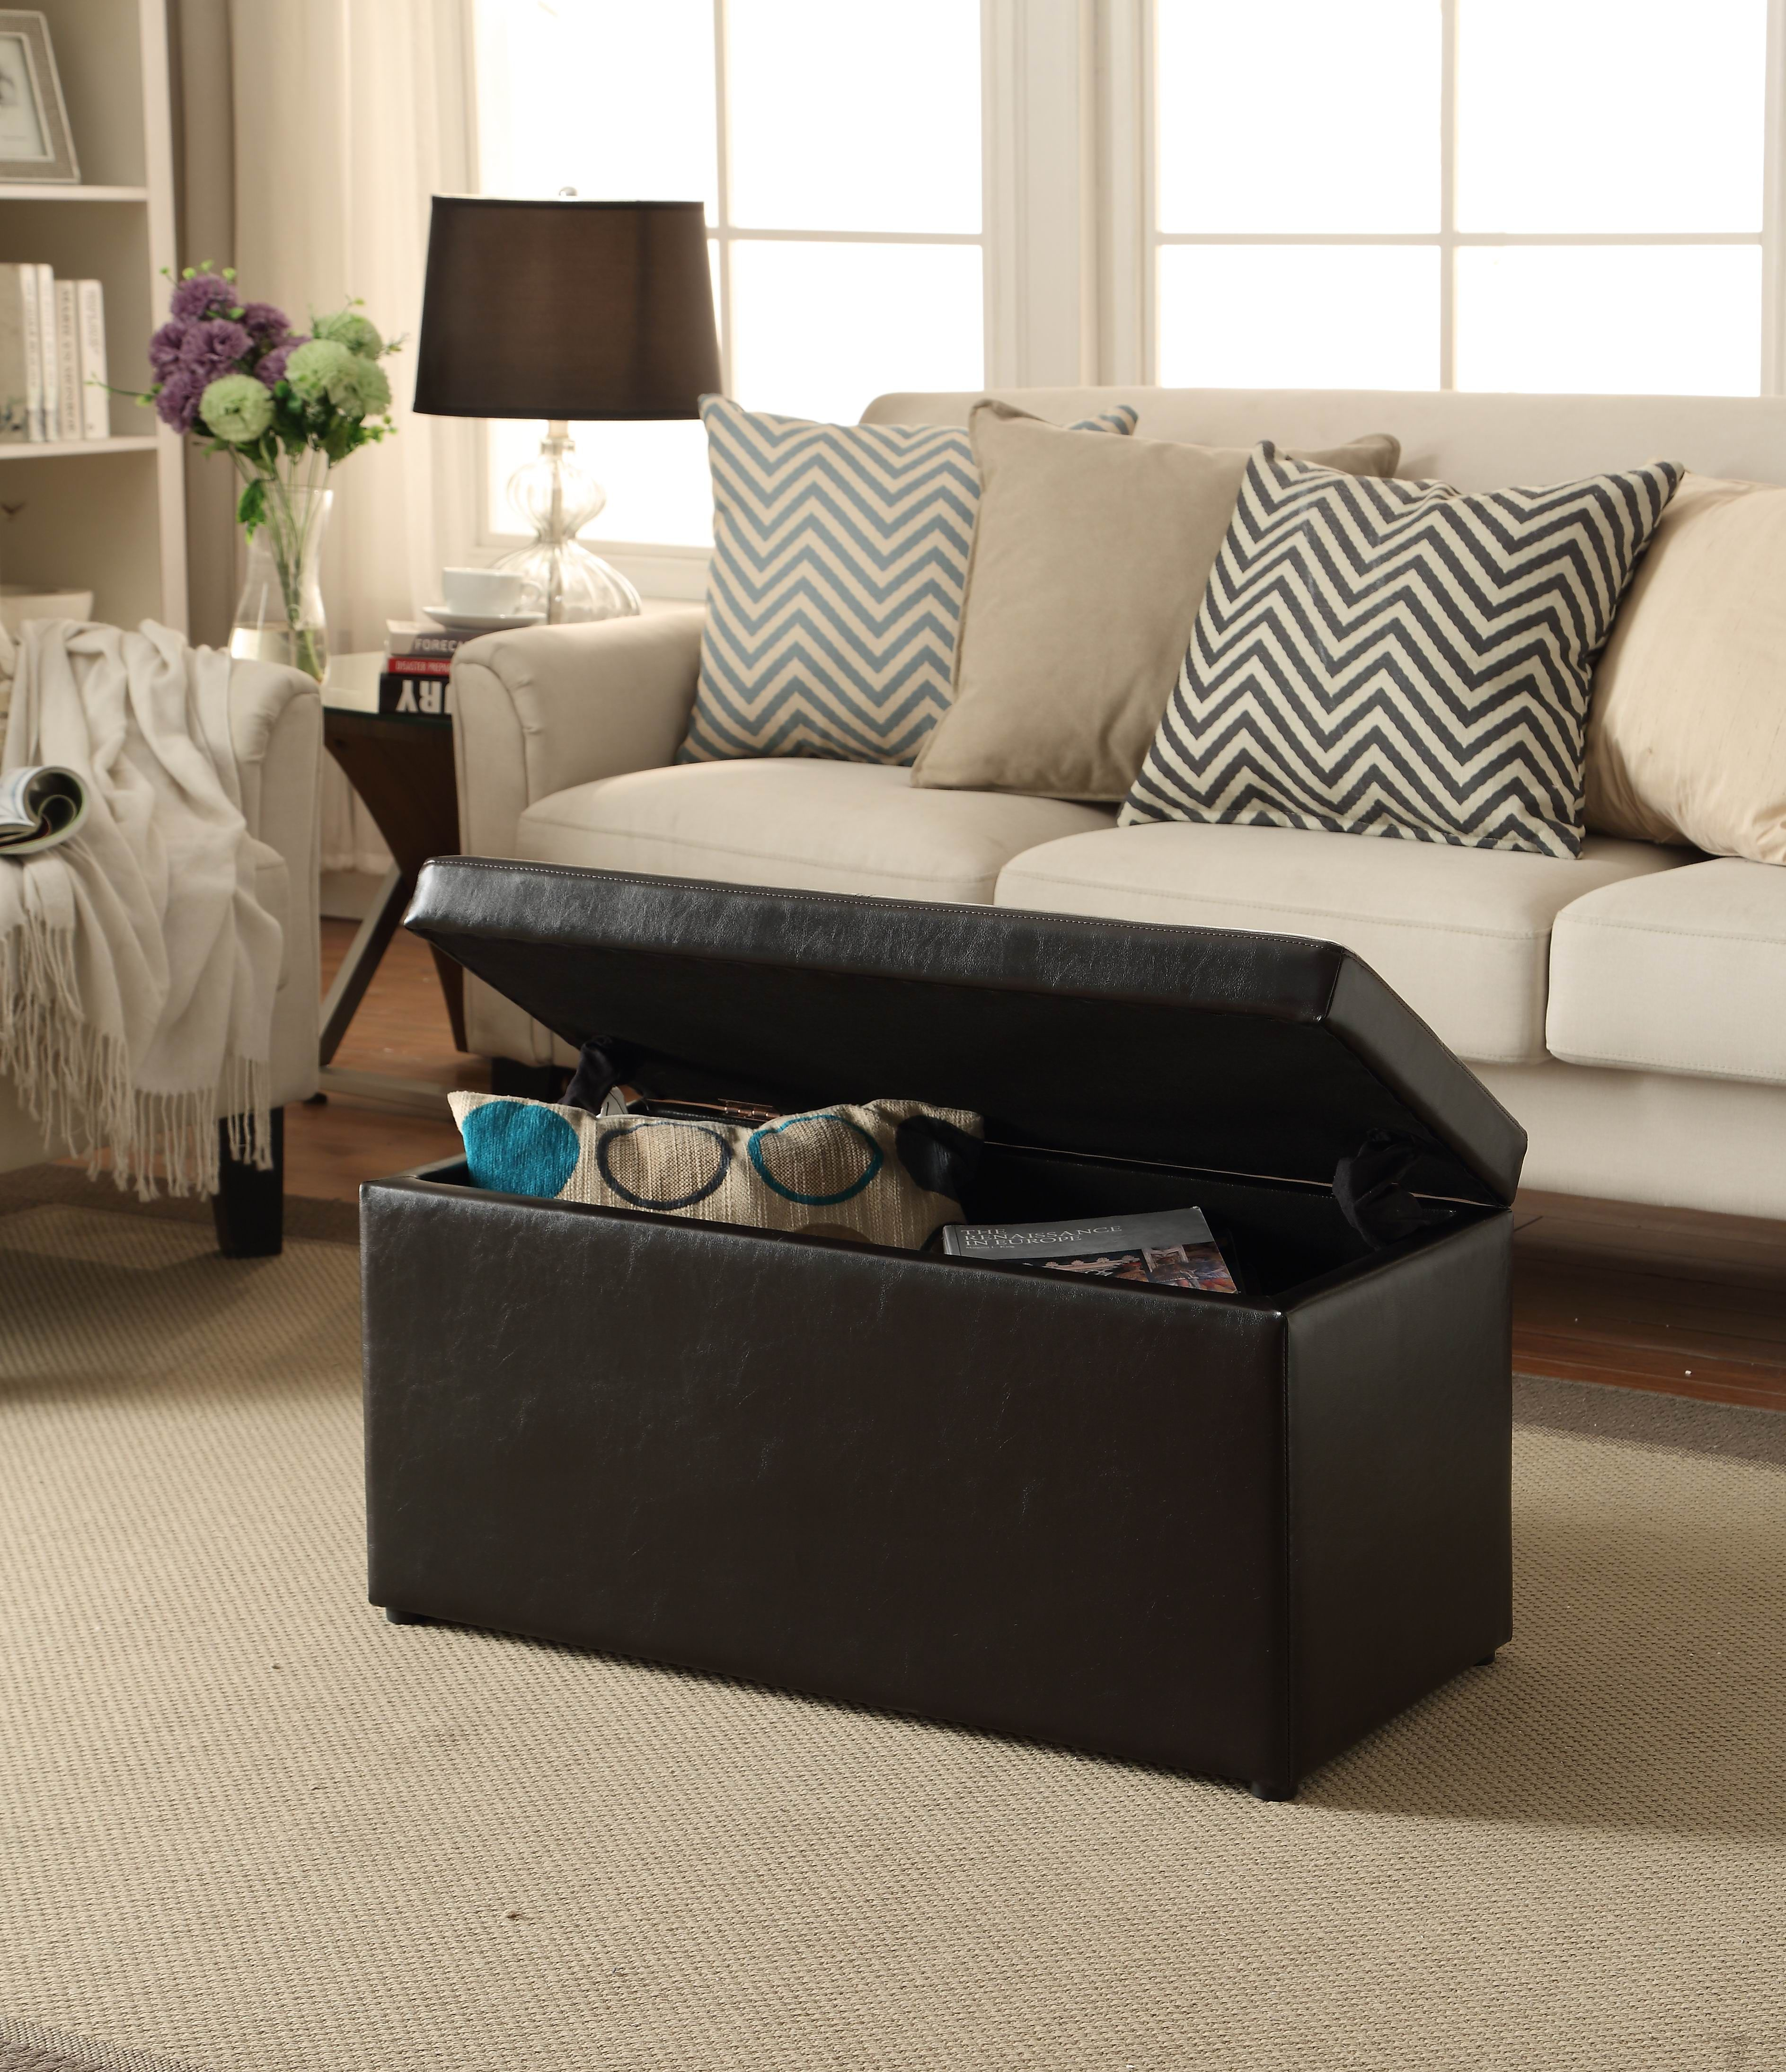 d11820660d0121249a2a9906c98e6122 - Better Homes And Gardens 30 Hinged Storage Ottoman Brown